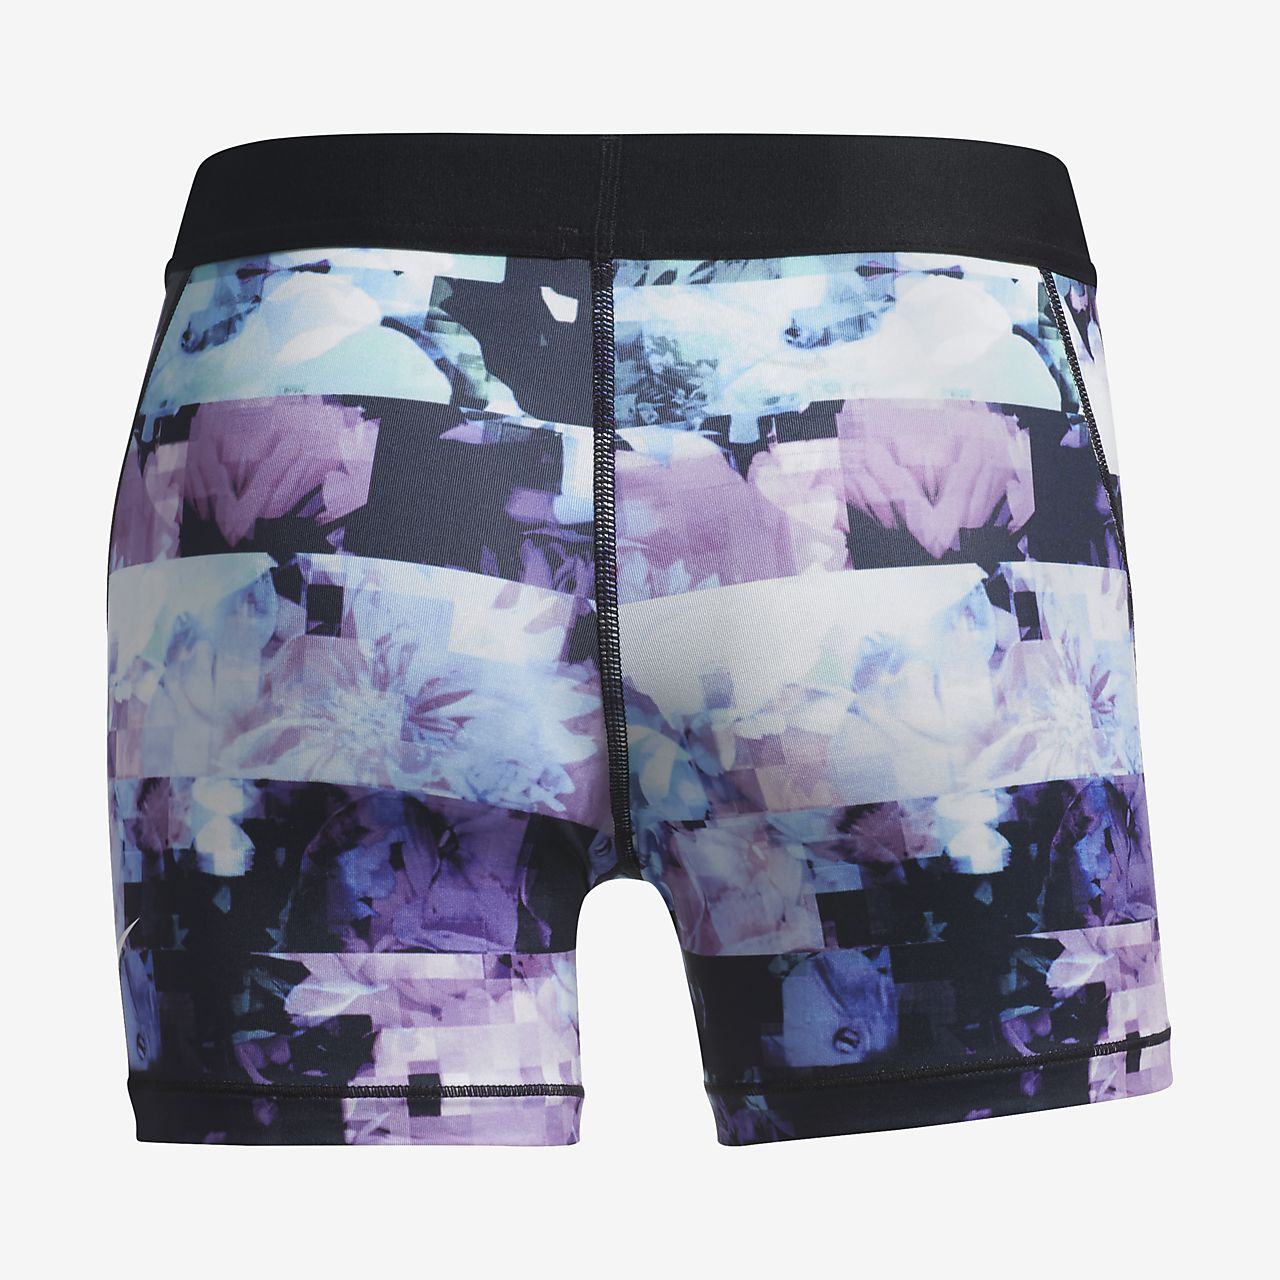 Nike Pro Older Kids Girls Shorts